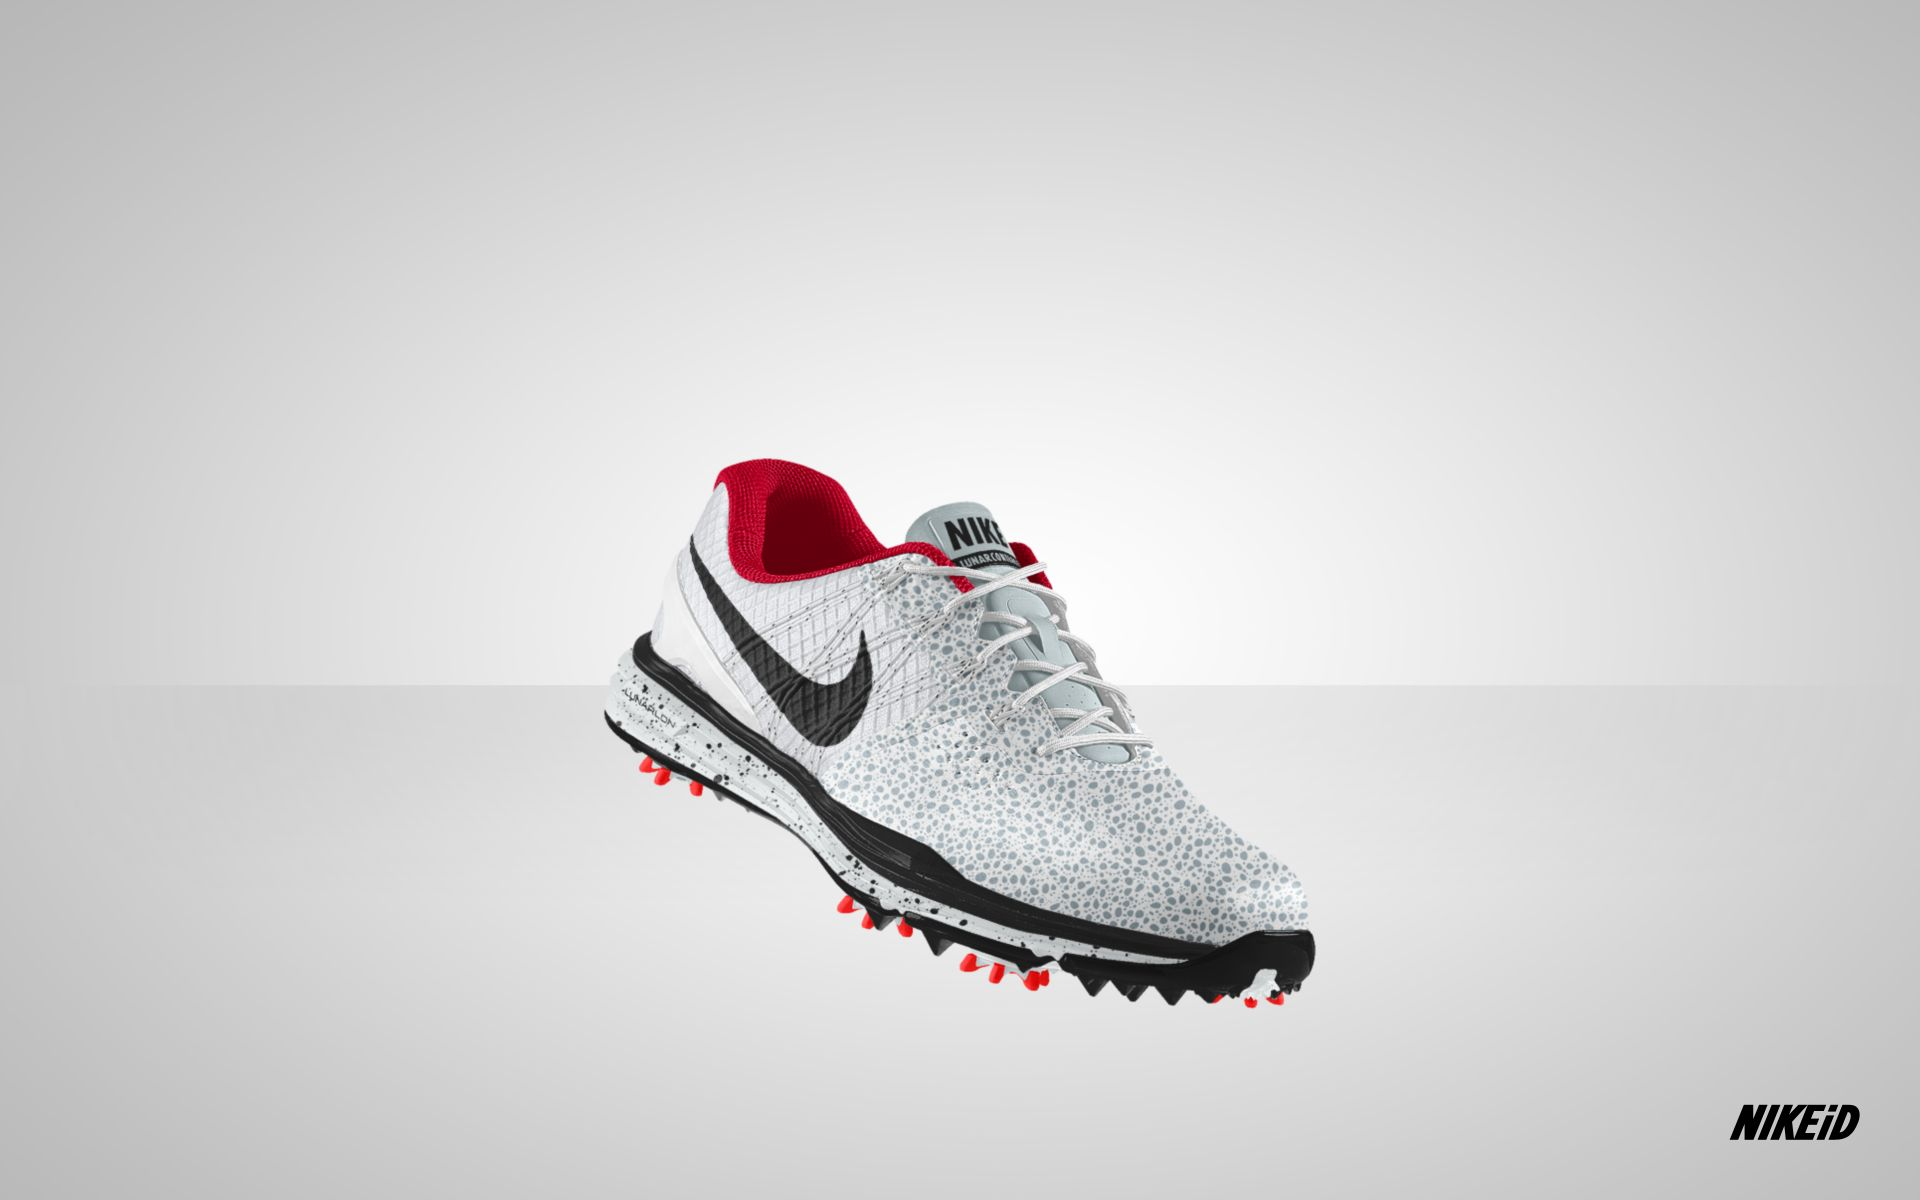 Design your own shoes and accessories, including bags and backpacks, on NIKEiD. Browse by sport, style or color. Delivered in weeks.